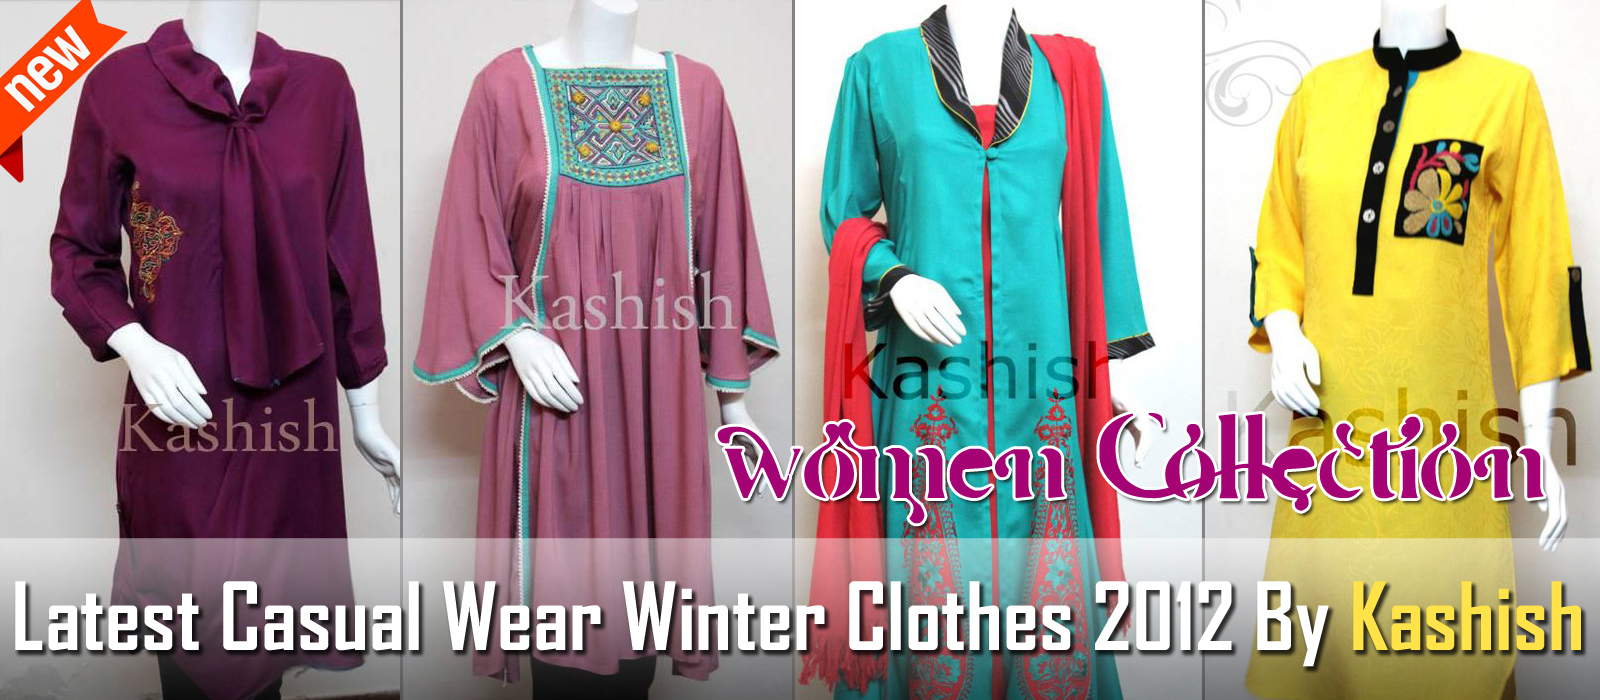 Dresses 2012 By Kashish | Casual Winter Collection 2012-13 For Women